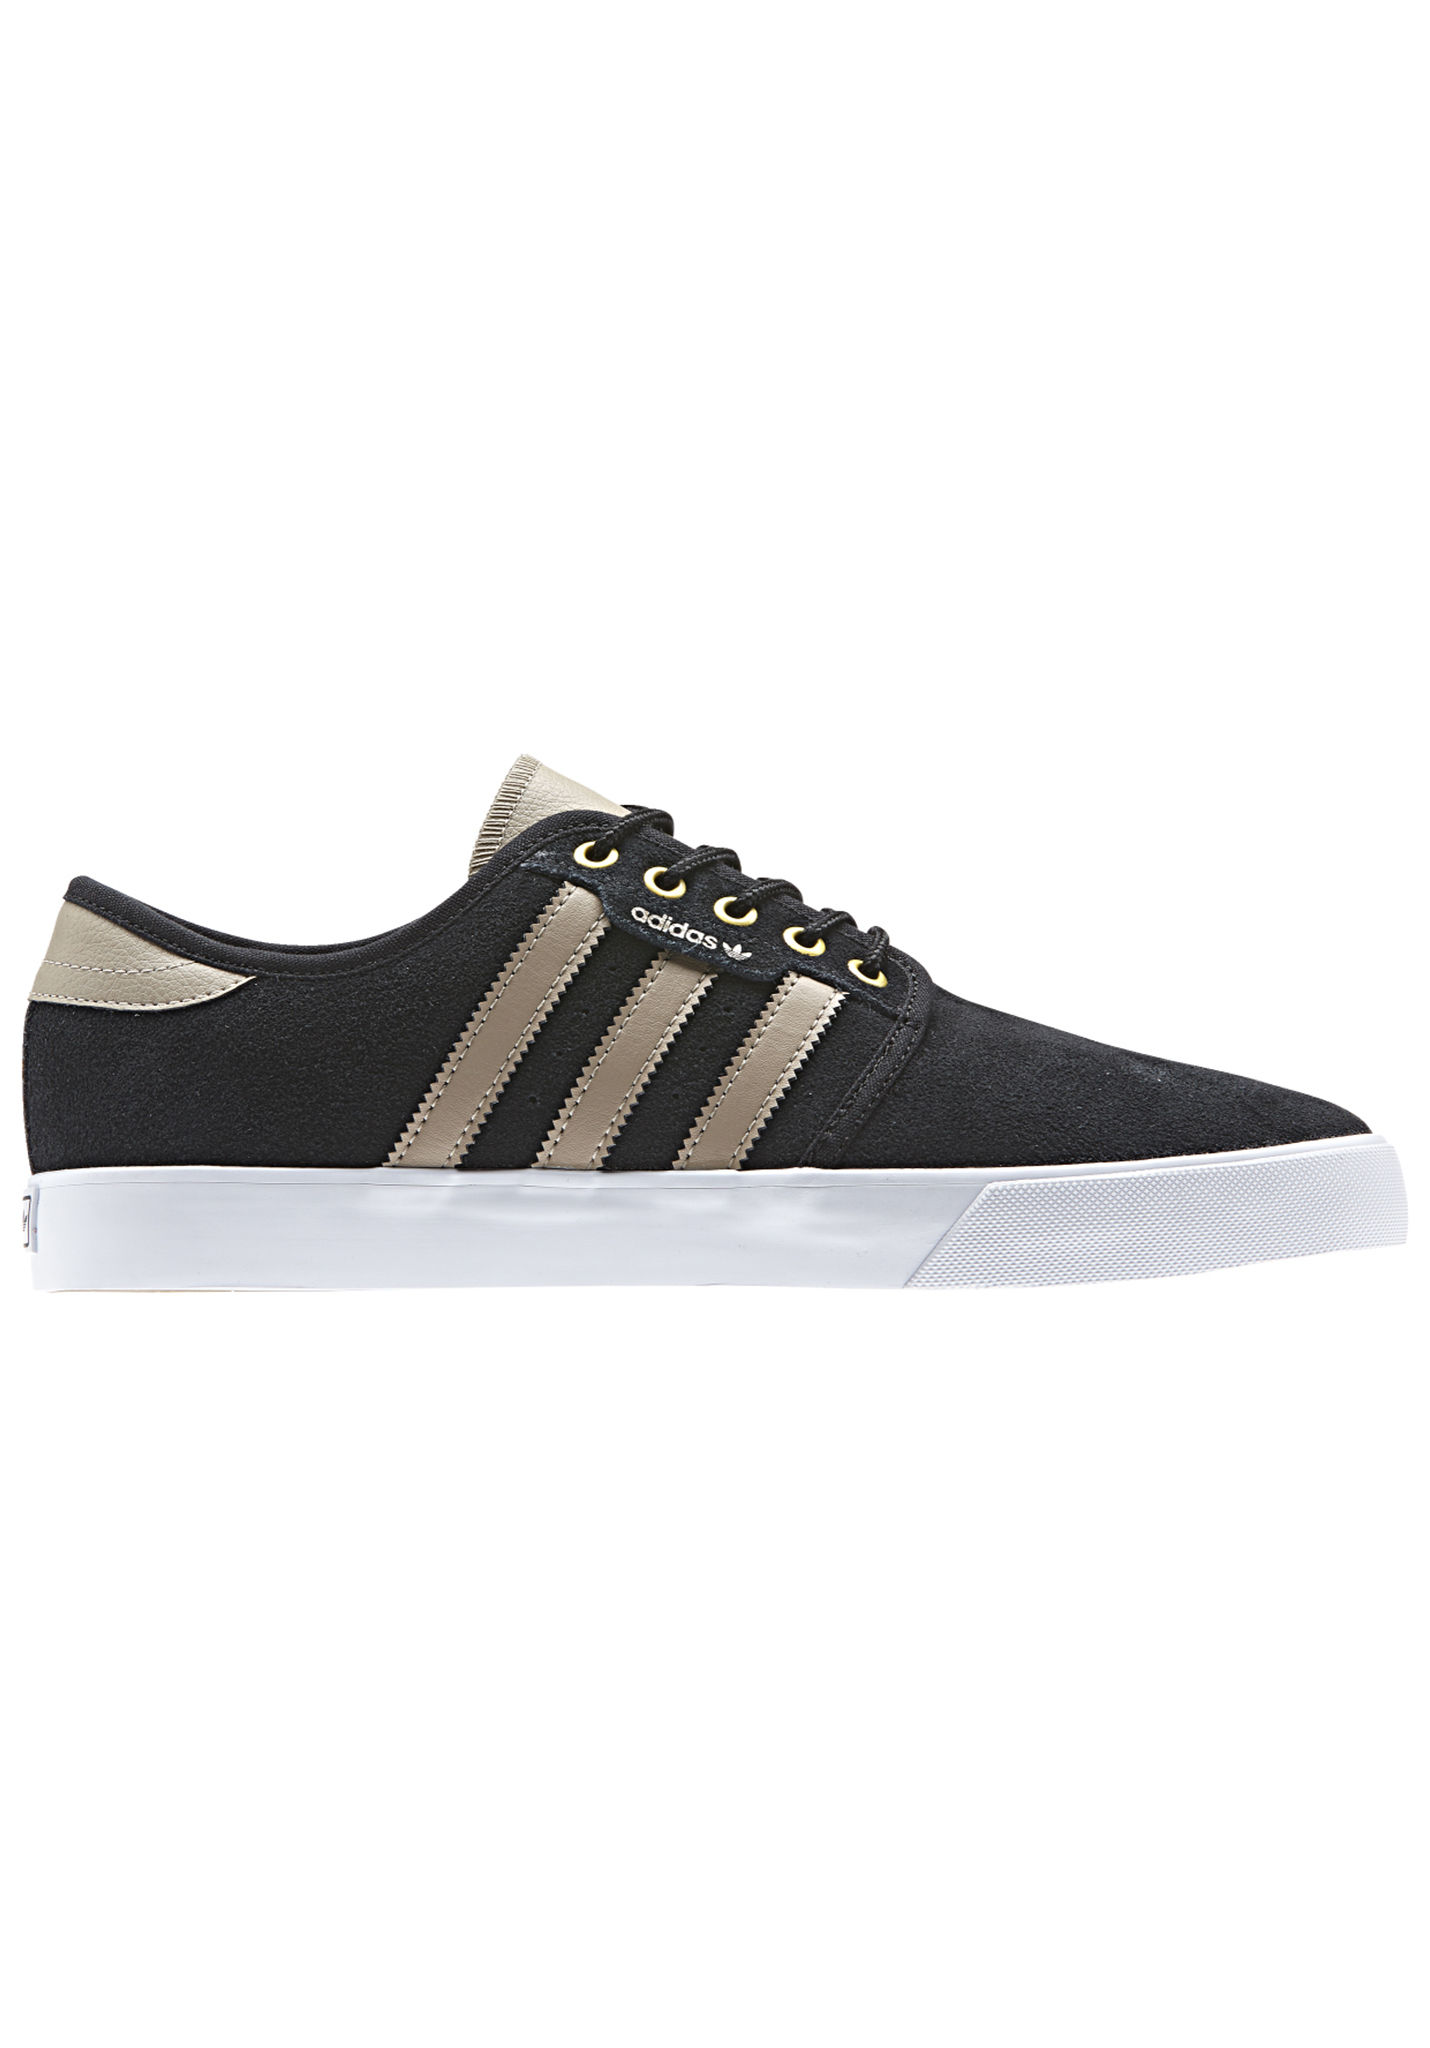 b7533b58dc518 ADIDAS ORIGINALS Seeley - Baskets pour Homme - Noir - Planet Sports